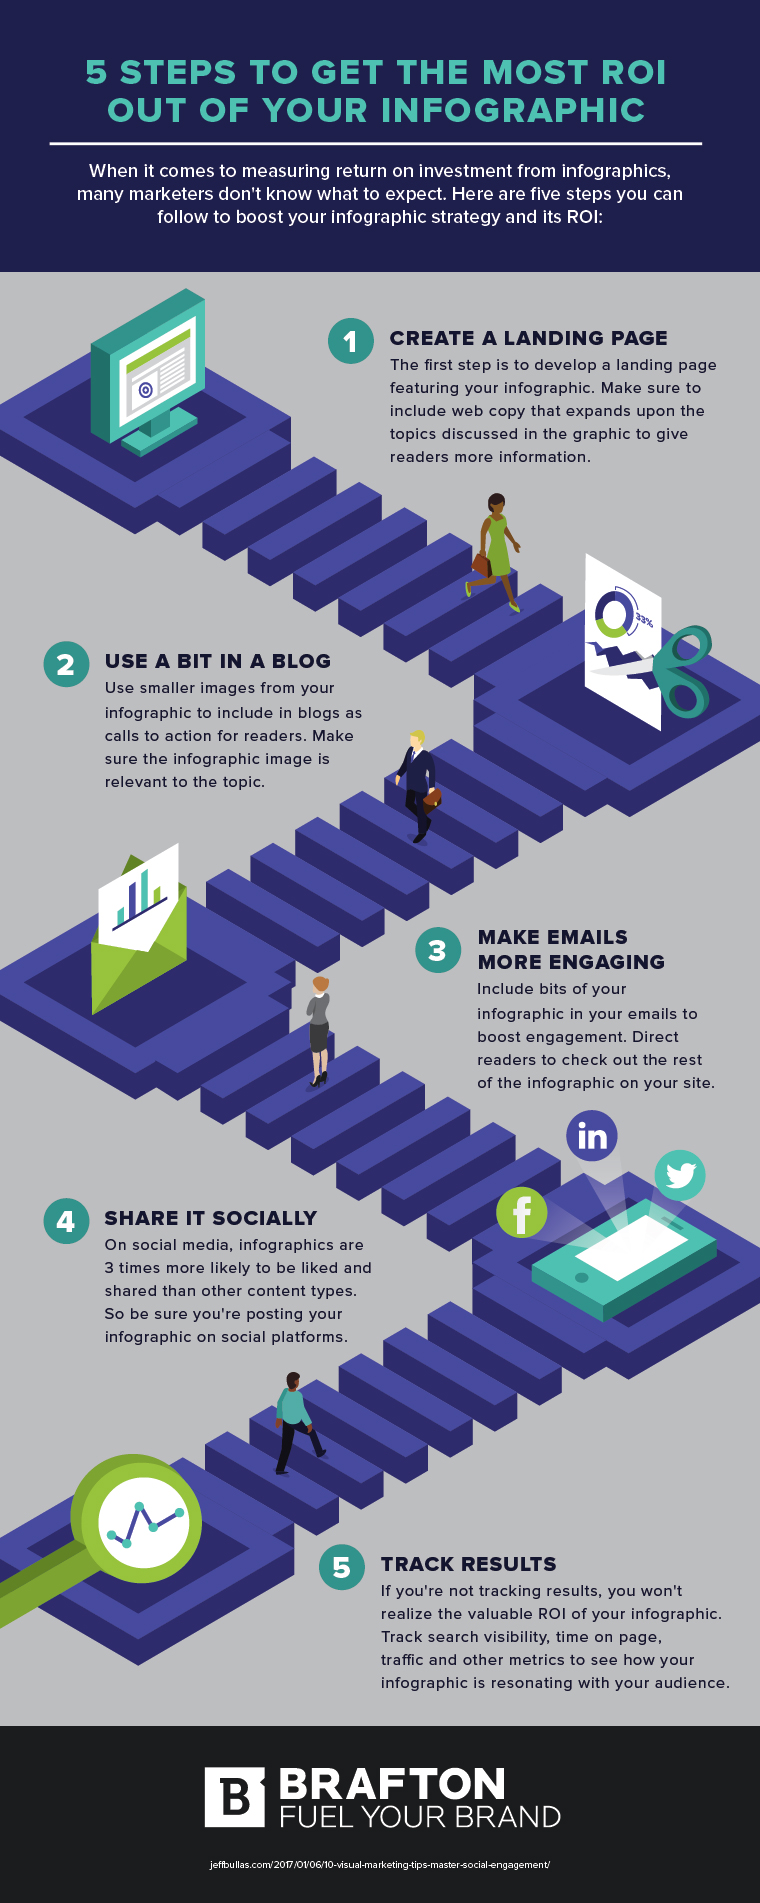 5 steps to get the most ROI out of your infographic